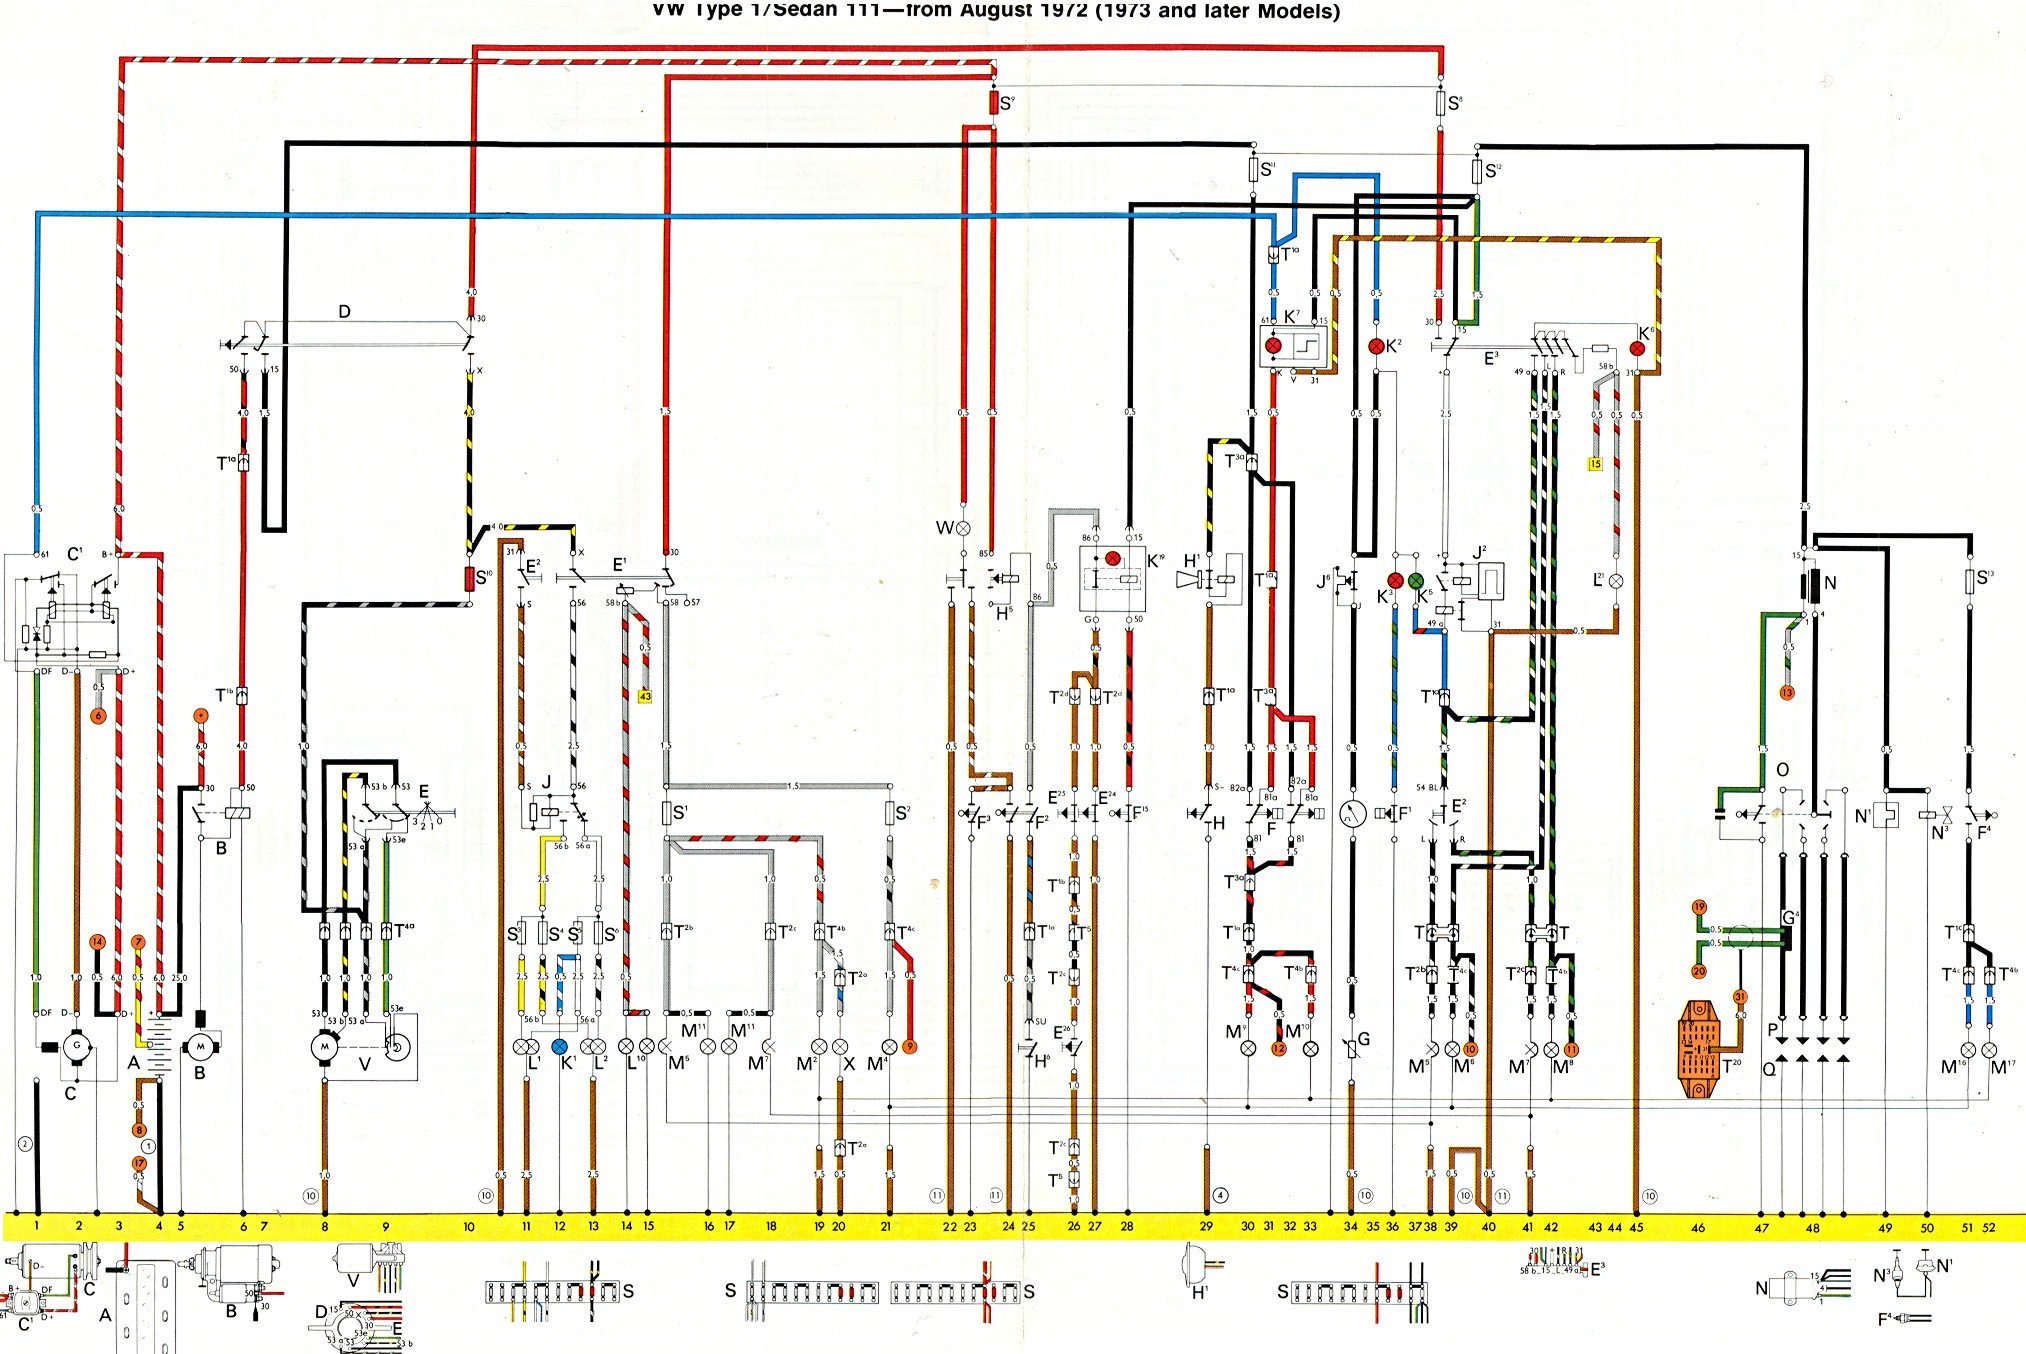 1974 super beetle wiring diagram three way where can i find a for vw yahoo